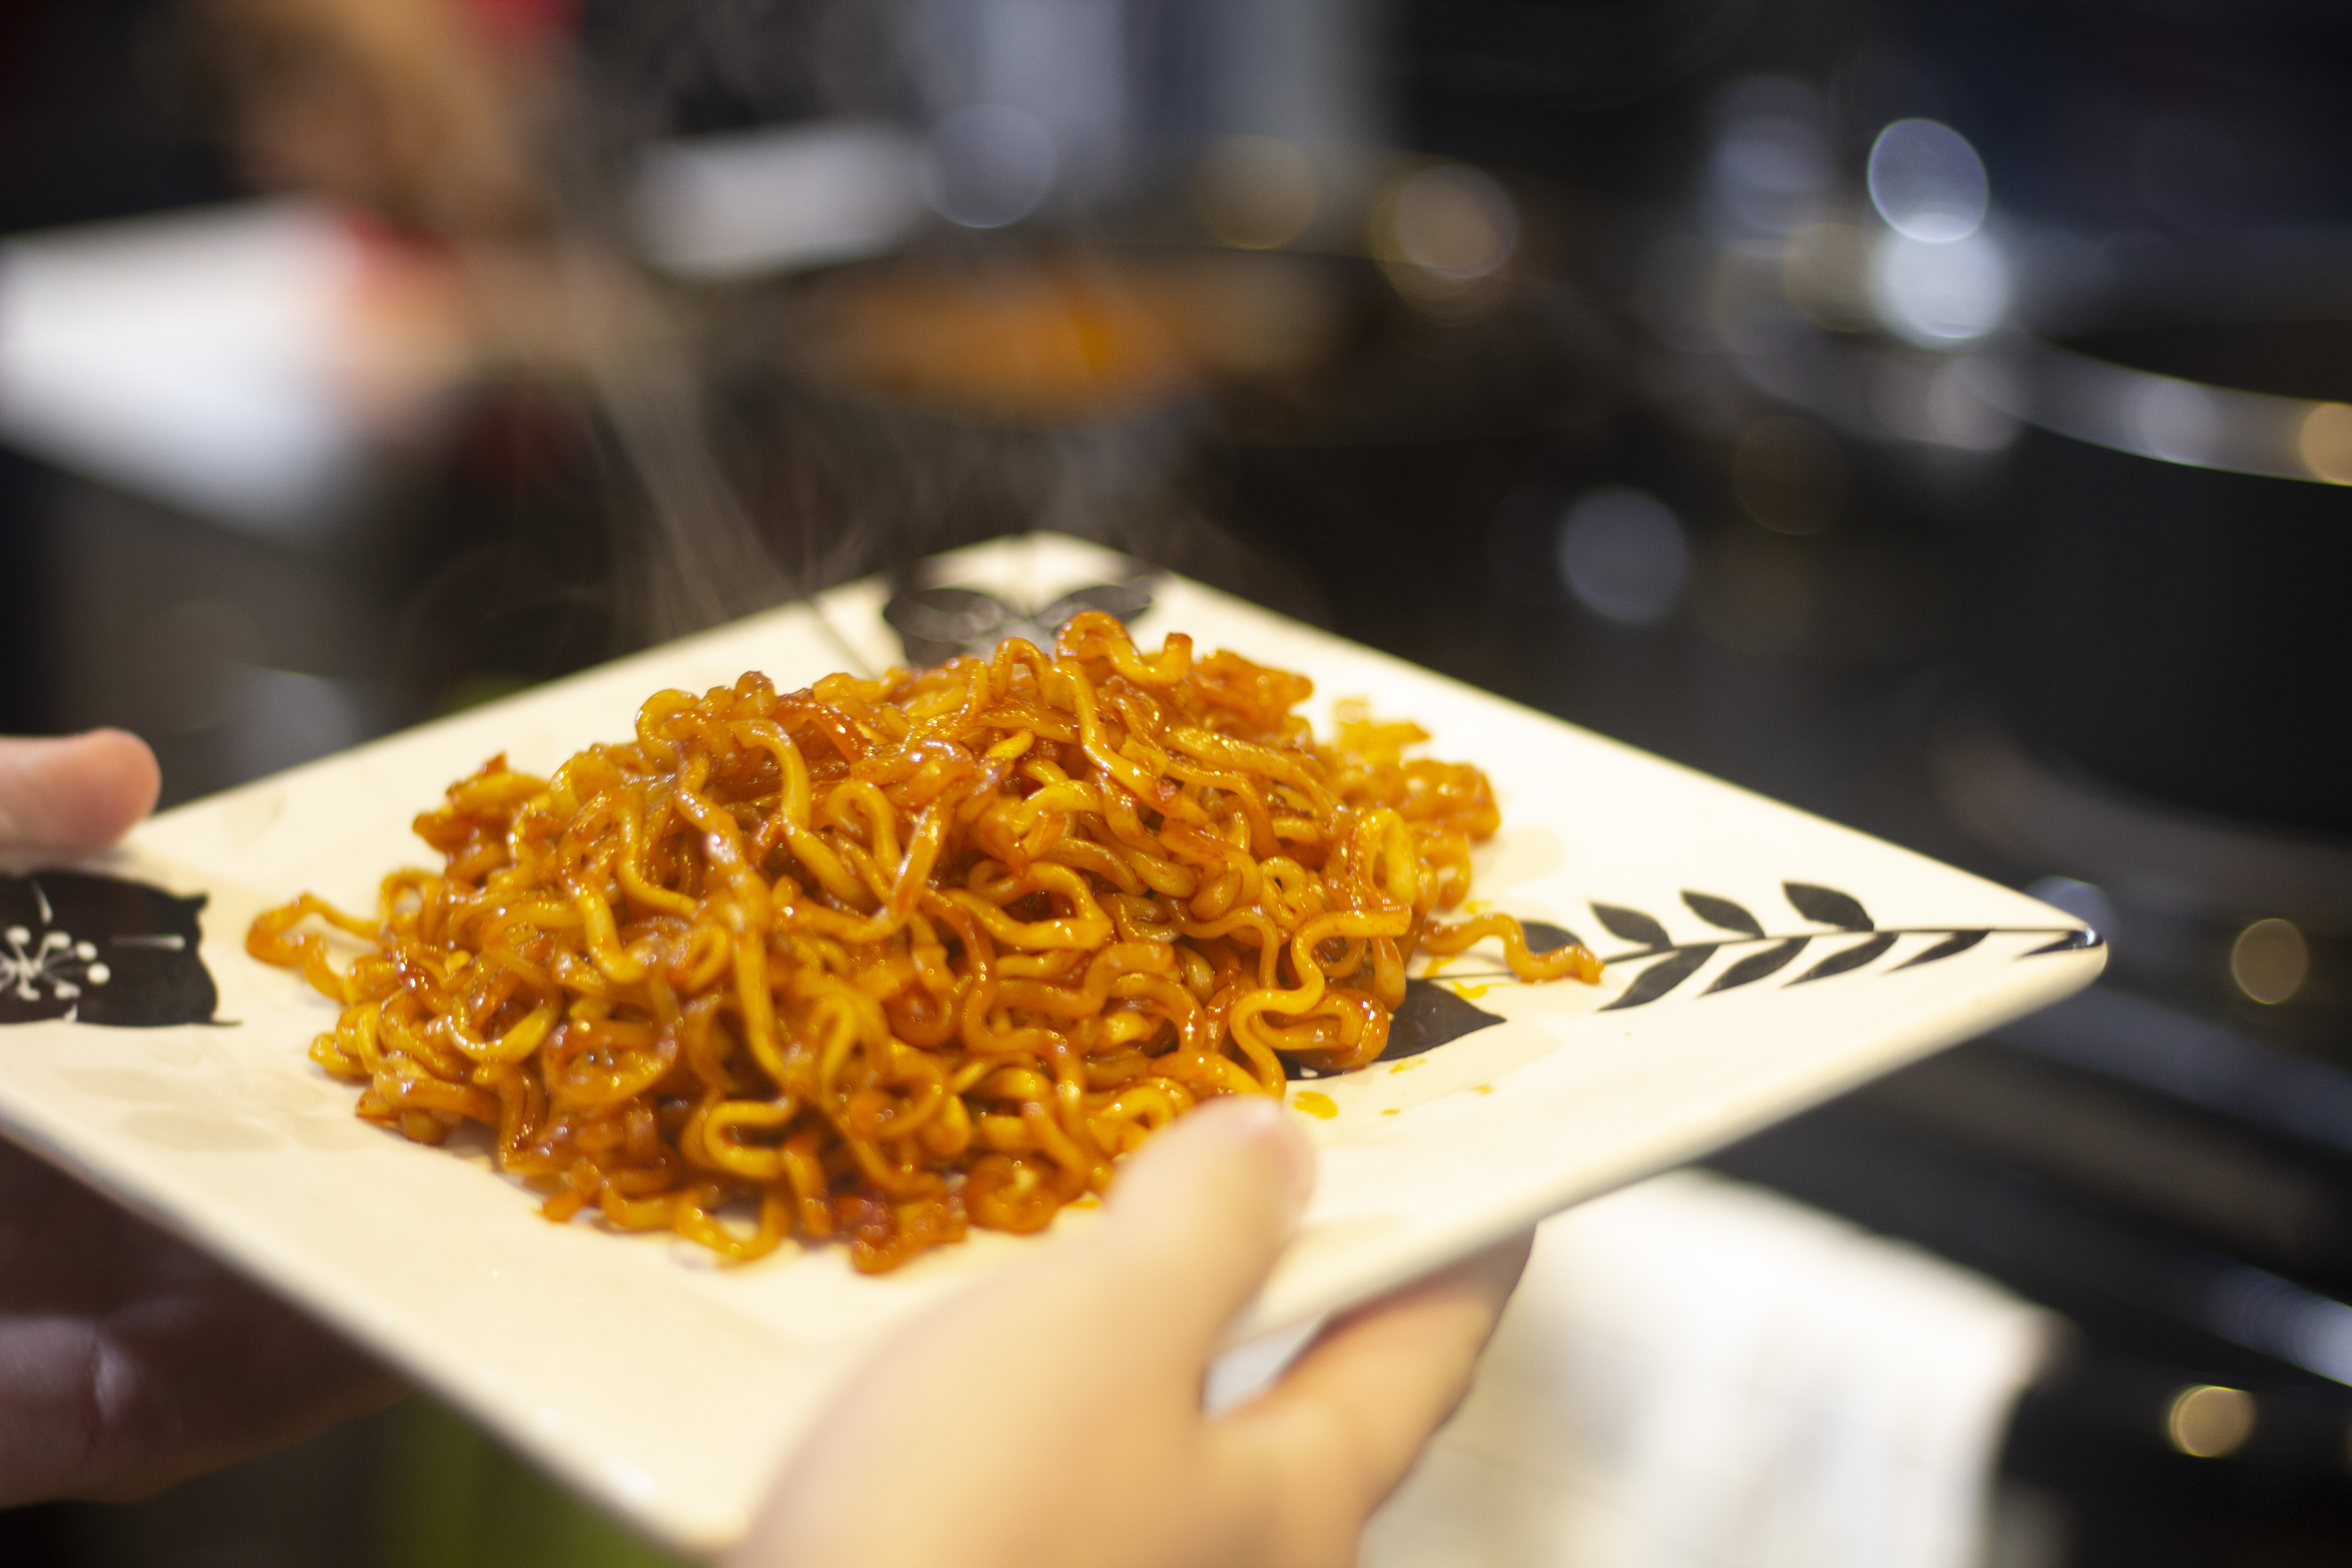 Nuclear spicy noodles: We tried it so you don't have to